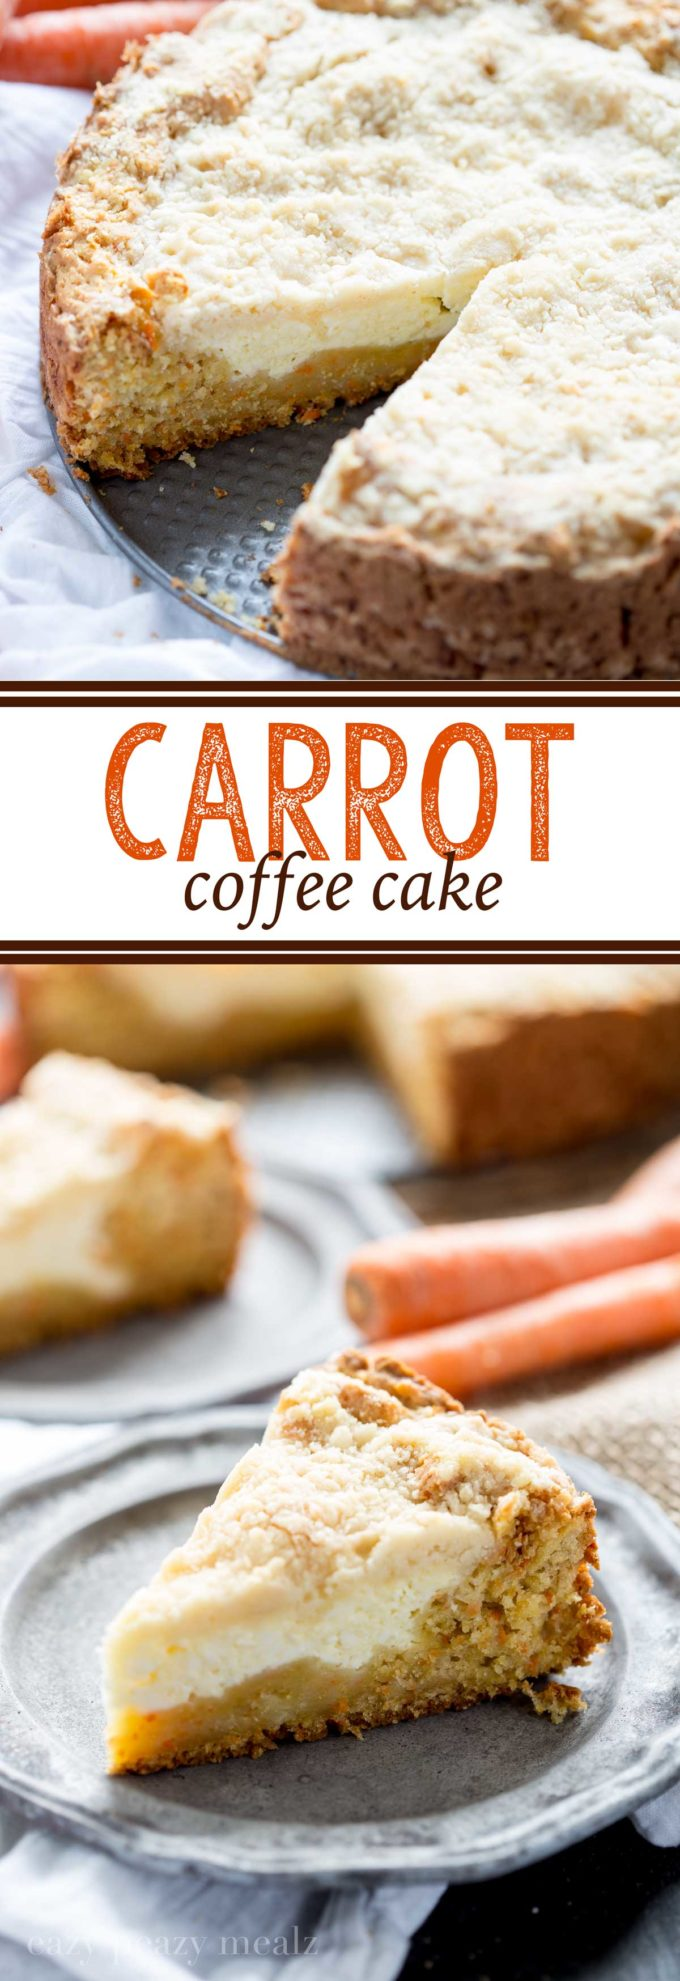 Carrot cake base, cream cheese filling, and a crumb topping, a fabulous treat or breakfast